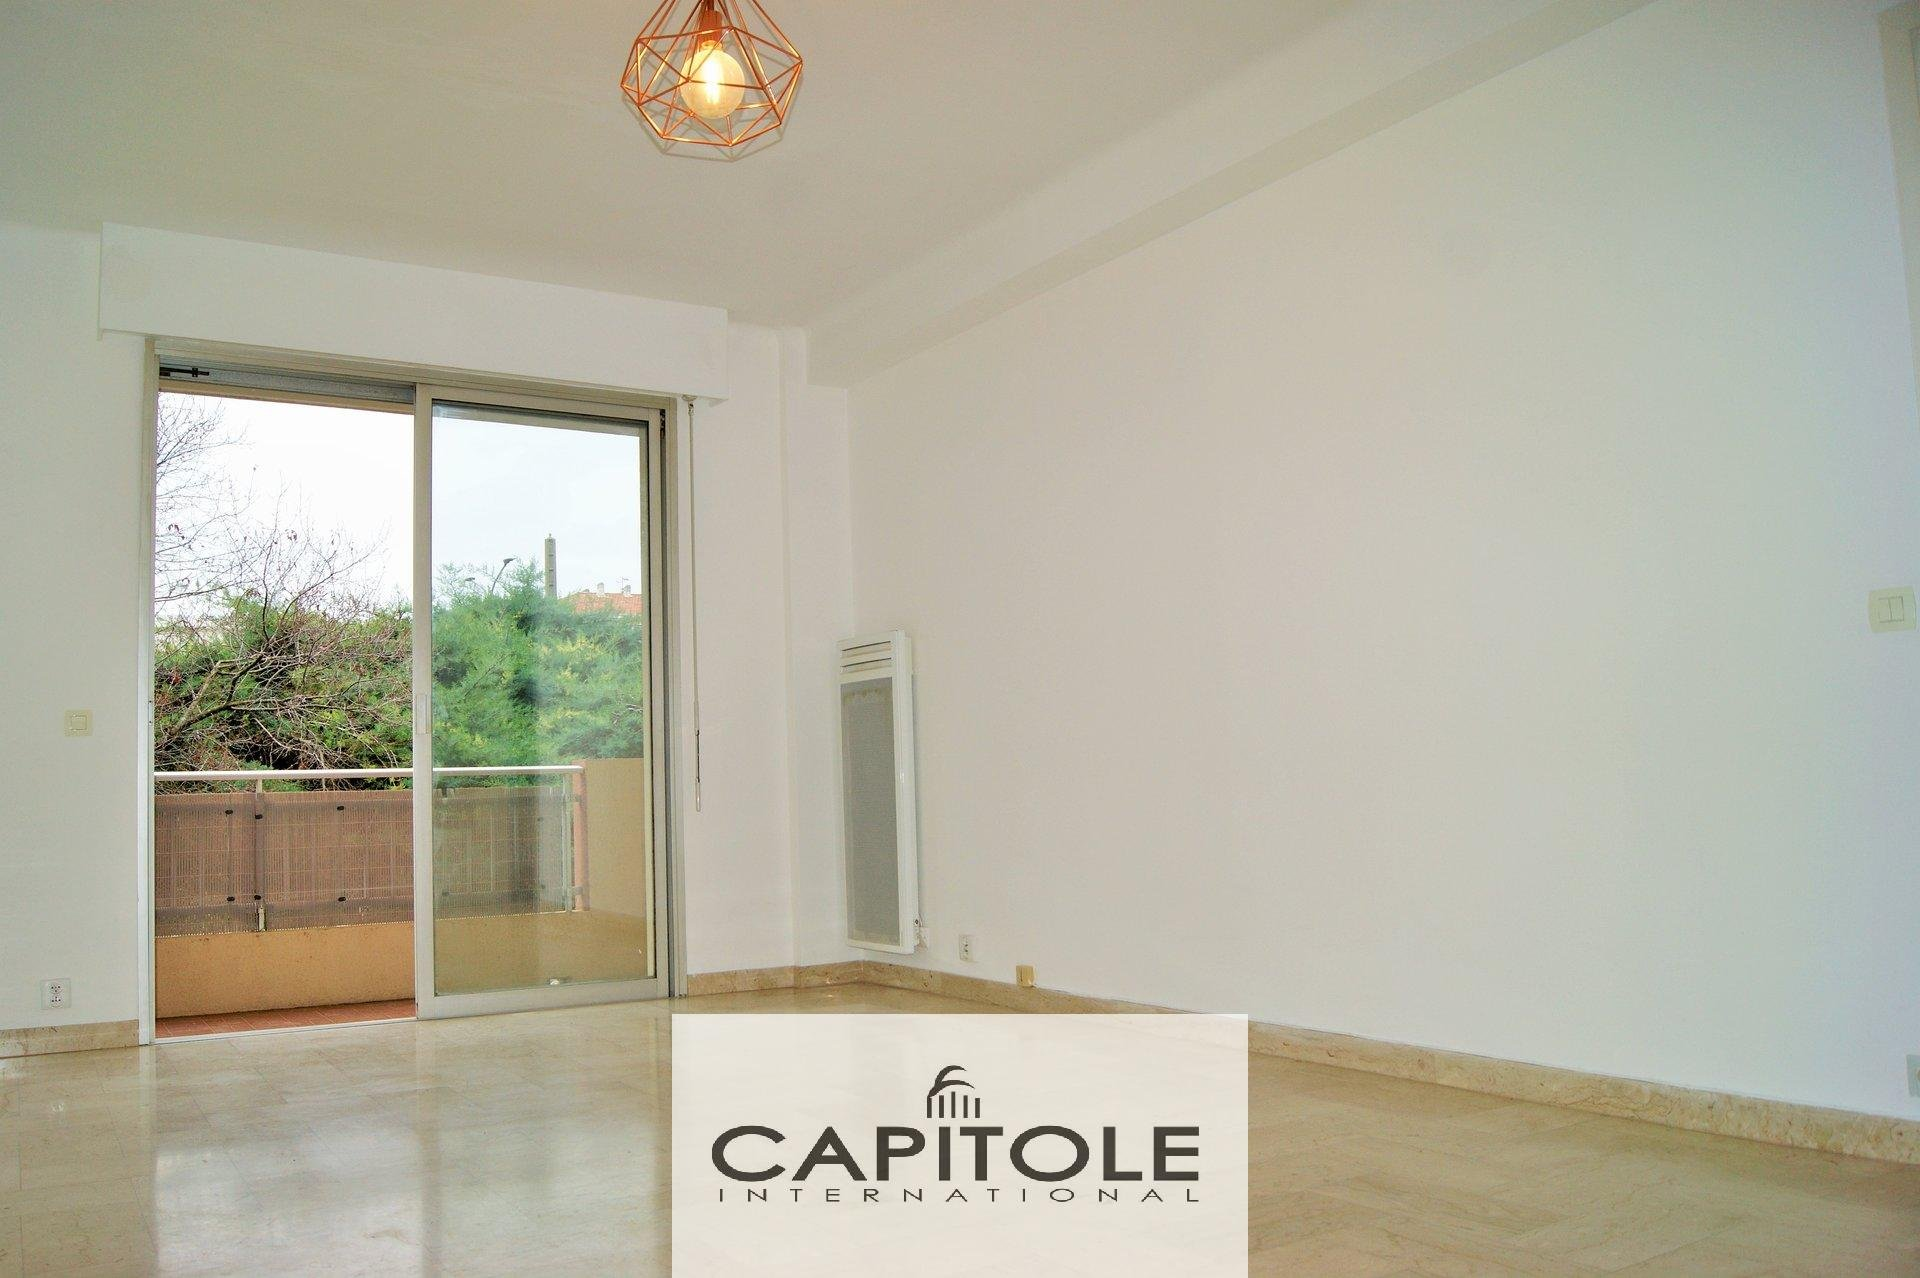 For sale, Antibes, 1 bedroom apartment, south facing terrace, parking place, cellar